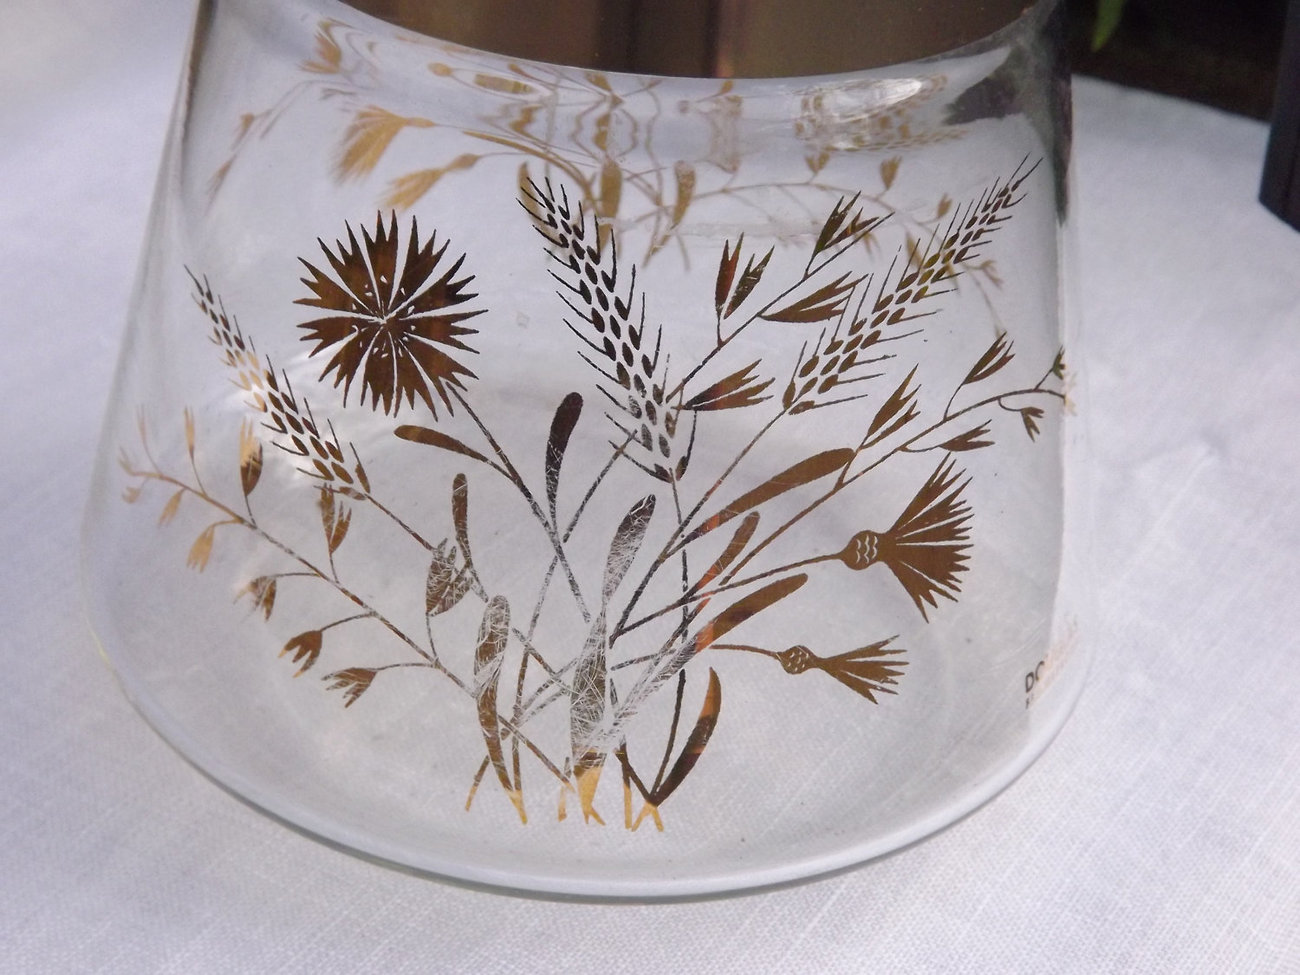 Gold Coffee Carafe, Large 6 Cup Beaker with Wheat Sprays